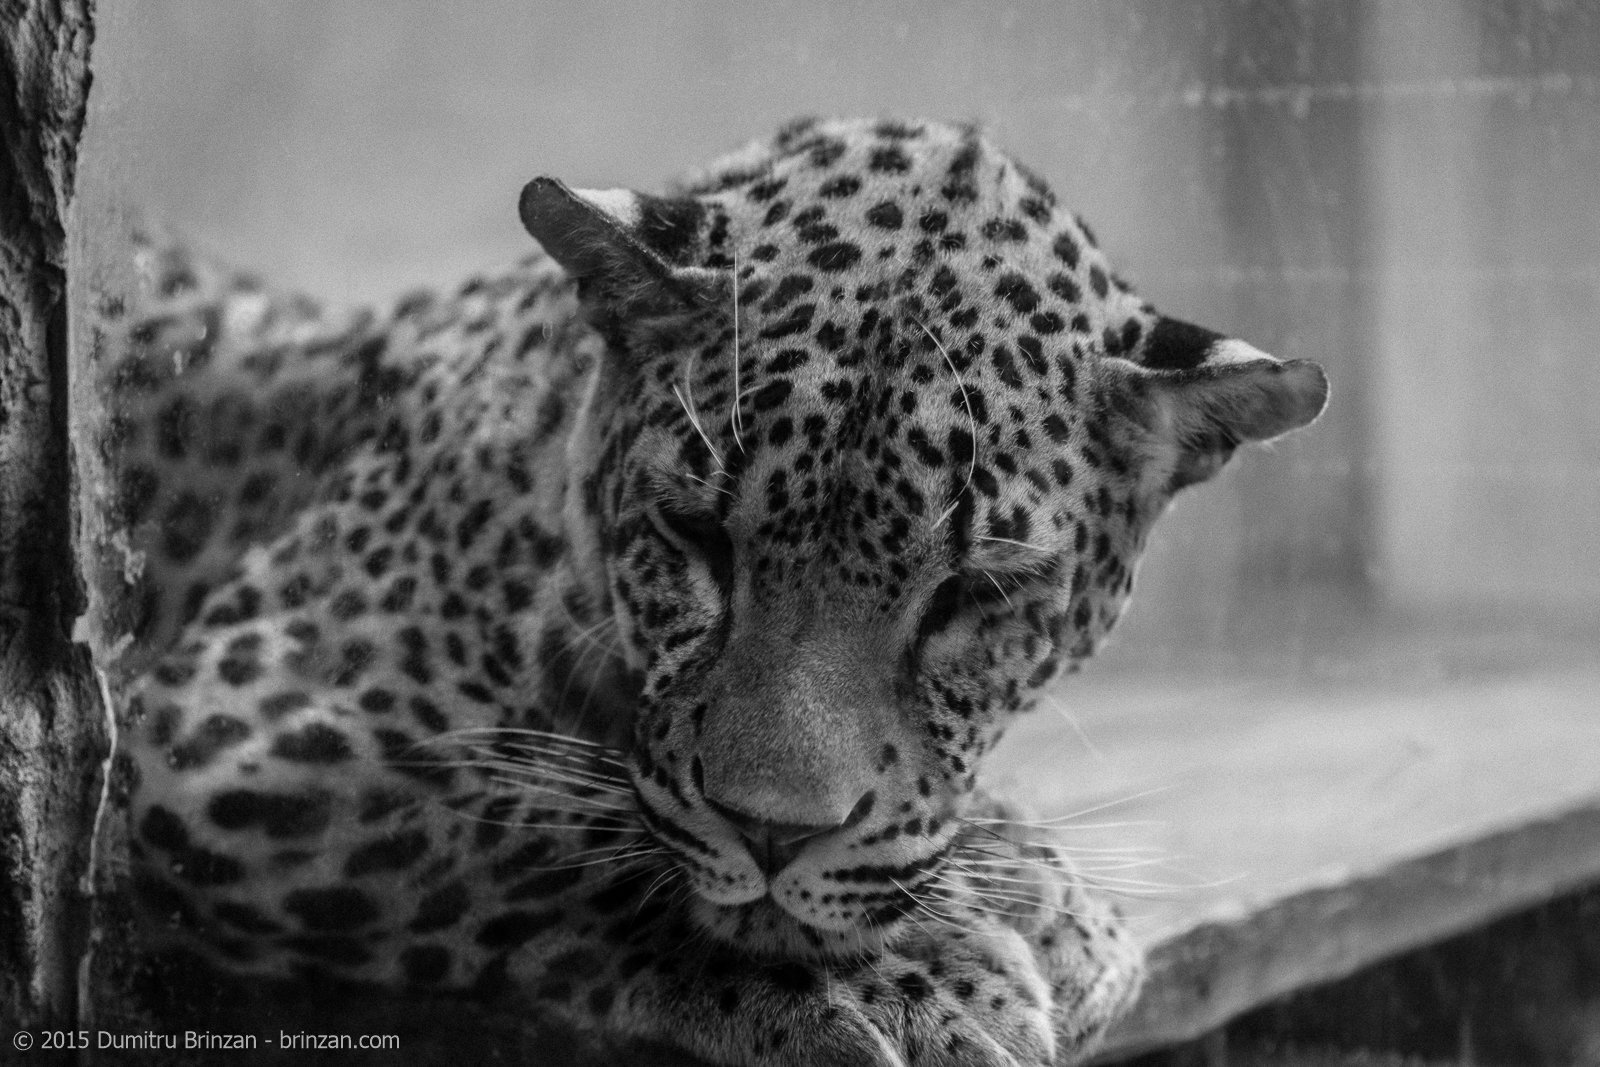 This leopard behind a glass wall was probably the saddest moment of this experience.